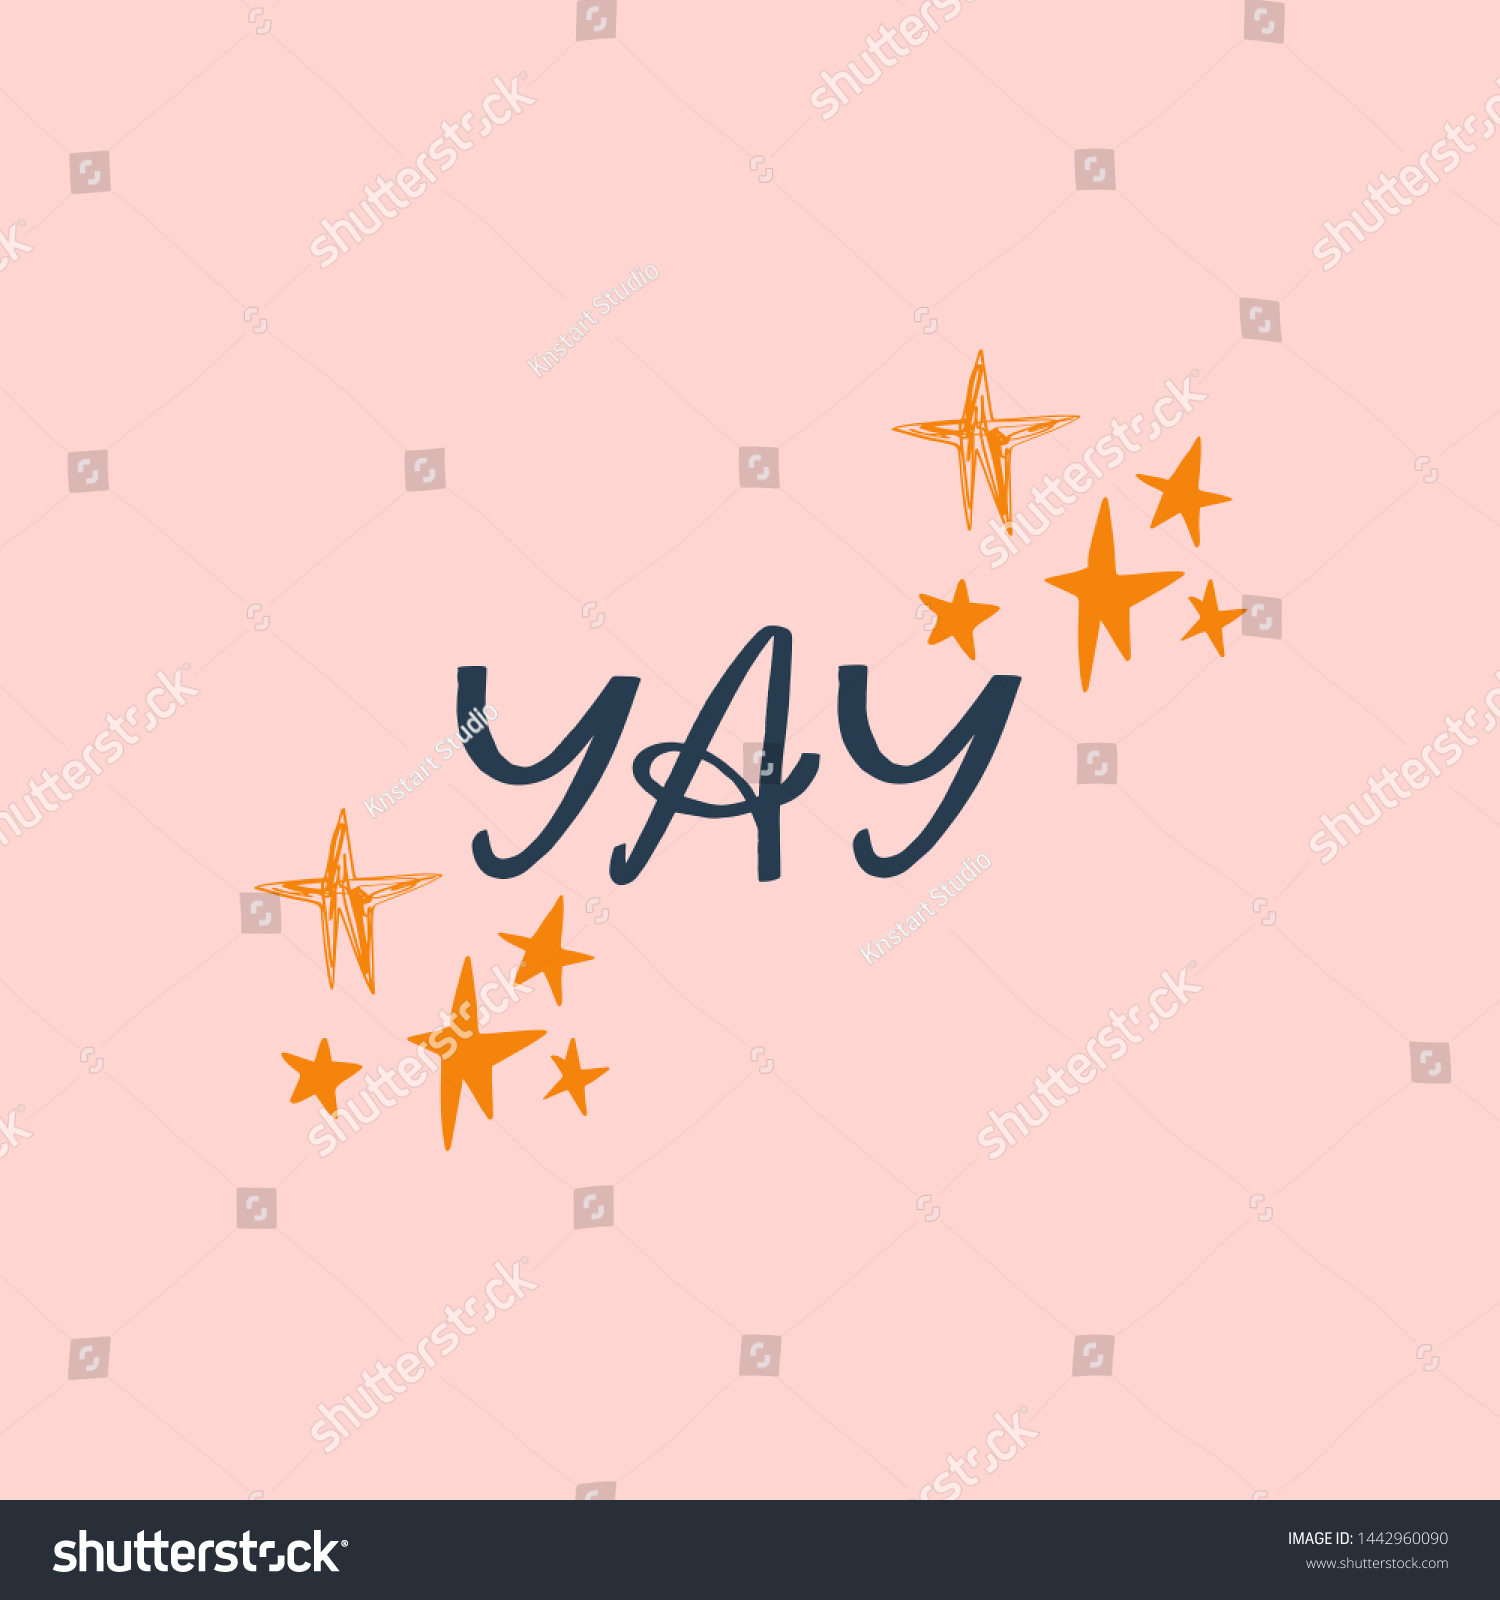 Vector De Stock Libre De Regalias Sobre Yay Text Congratulation Happy Day Hand1442960090 5 yaytext alternatives & similar websites. shutterstock